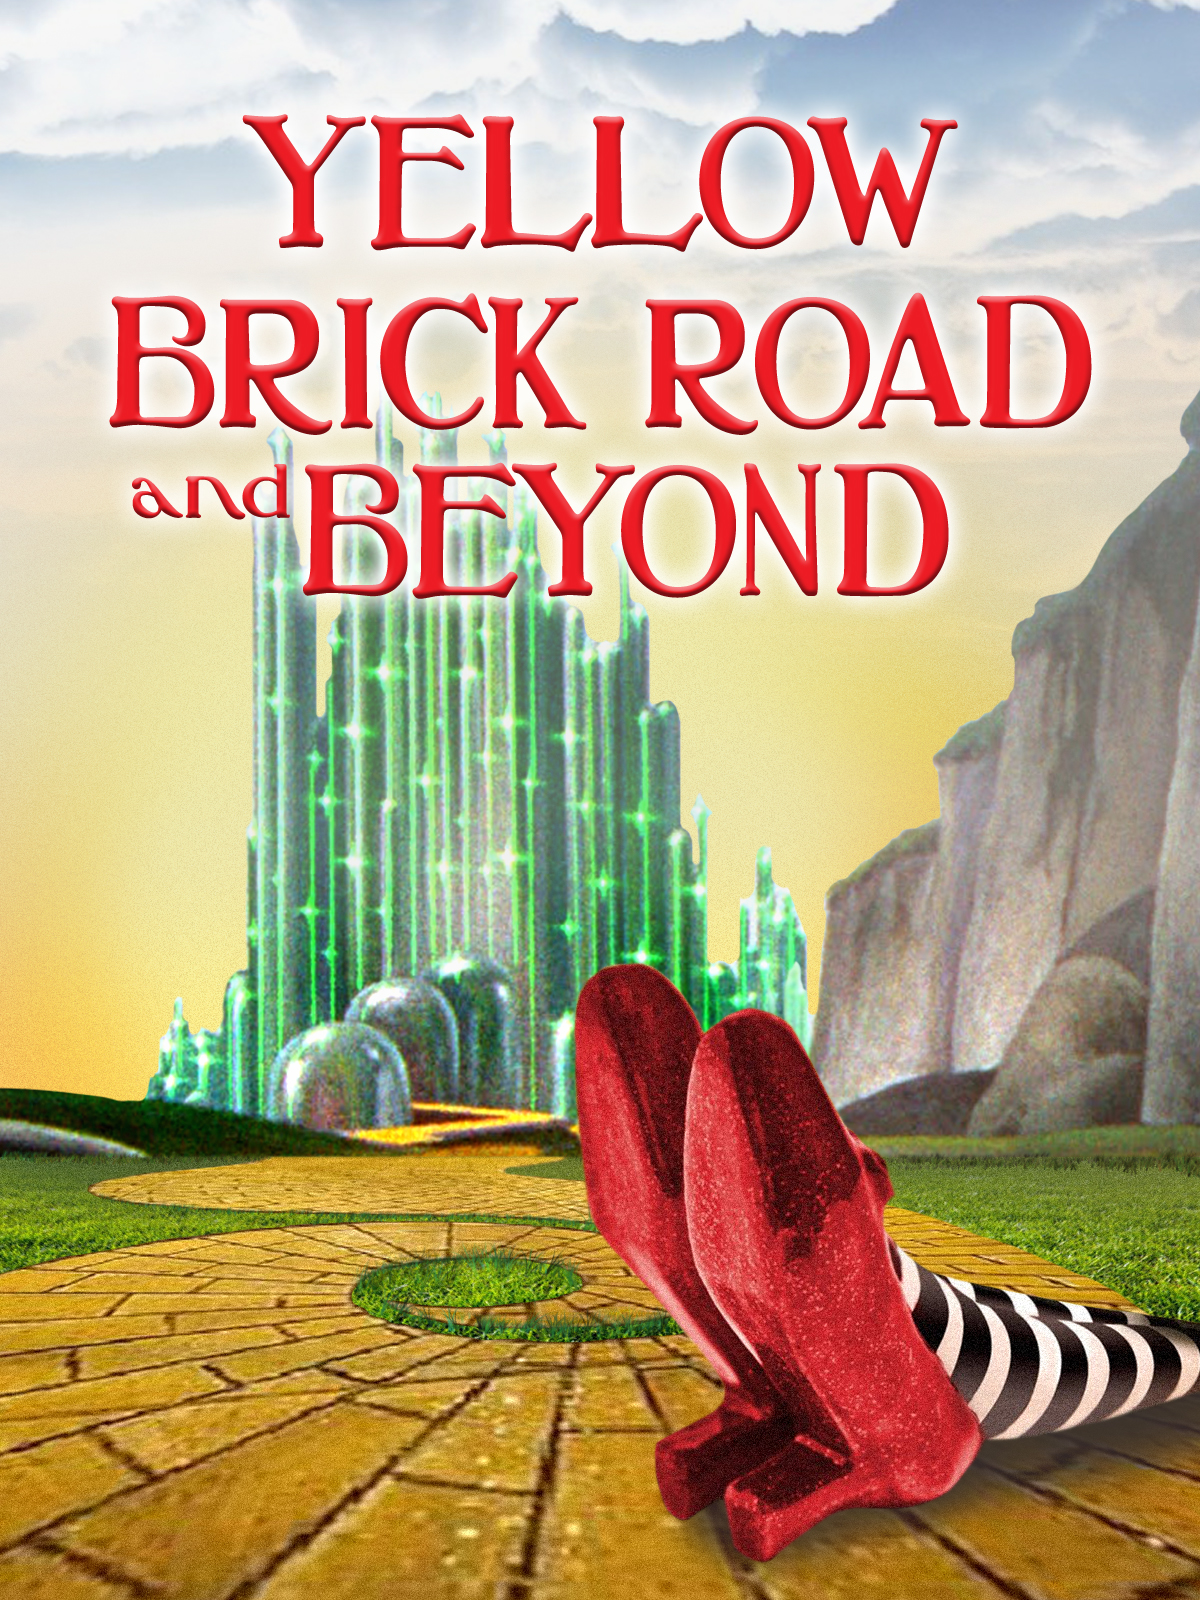 The Yellow Brick Road and Beyond on FREECABLE TV